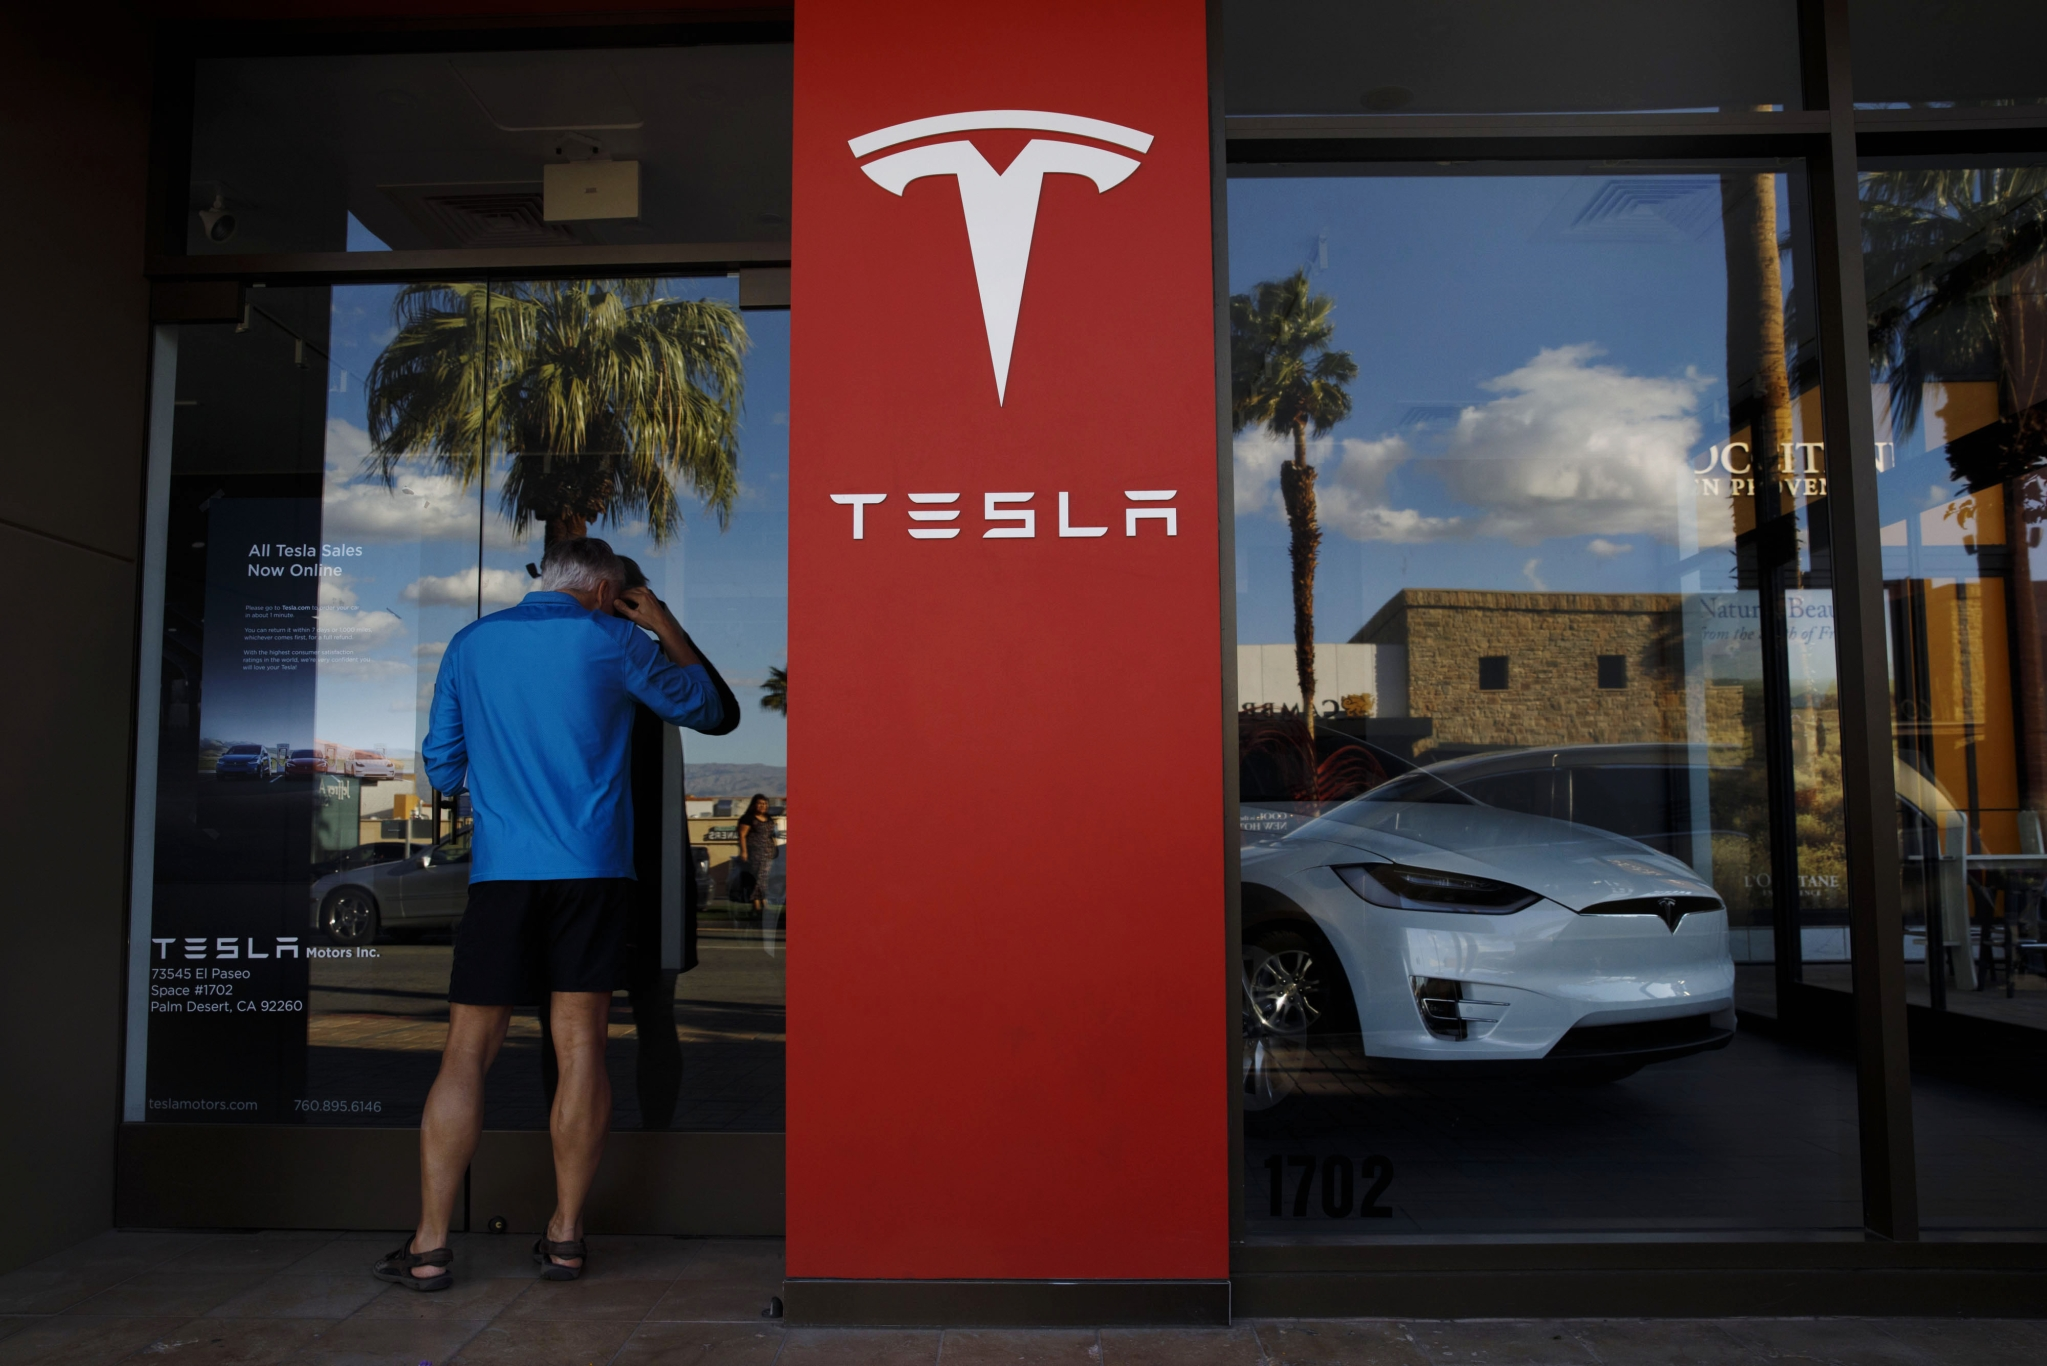 Tesla Model 3s: Tesla Is In Talks With Chinese Battery Giant To